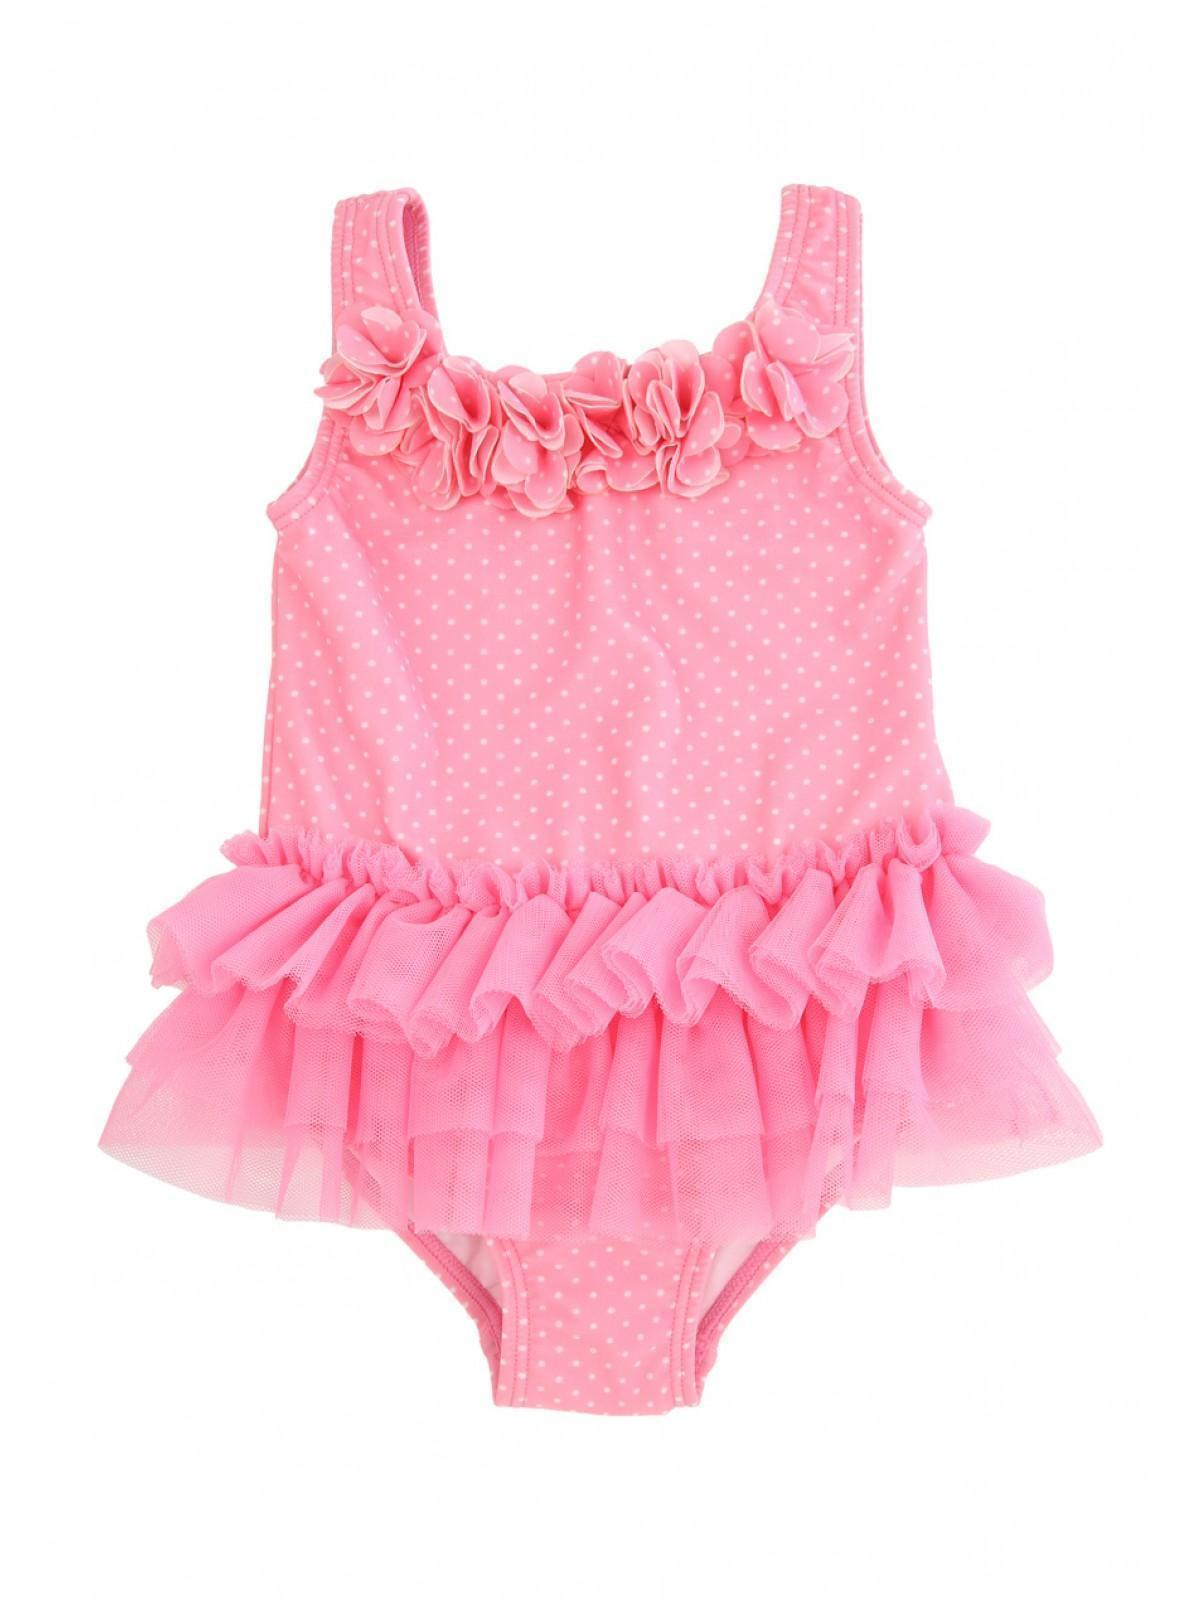 0bd45f9cda Home; Baby Girl Pink Tutu Swimsuit. Back. PreviousNext